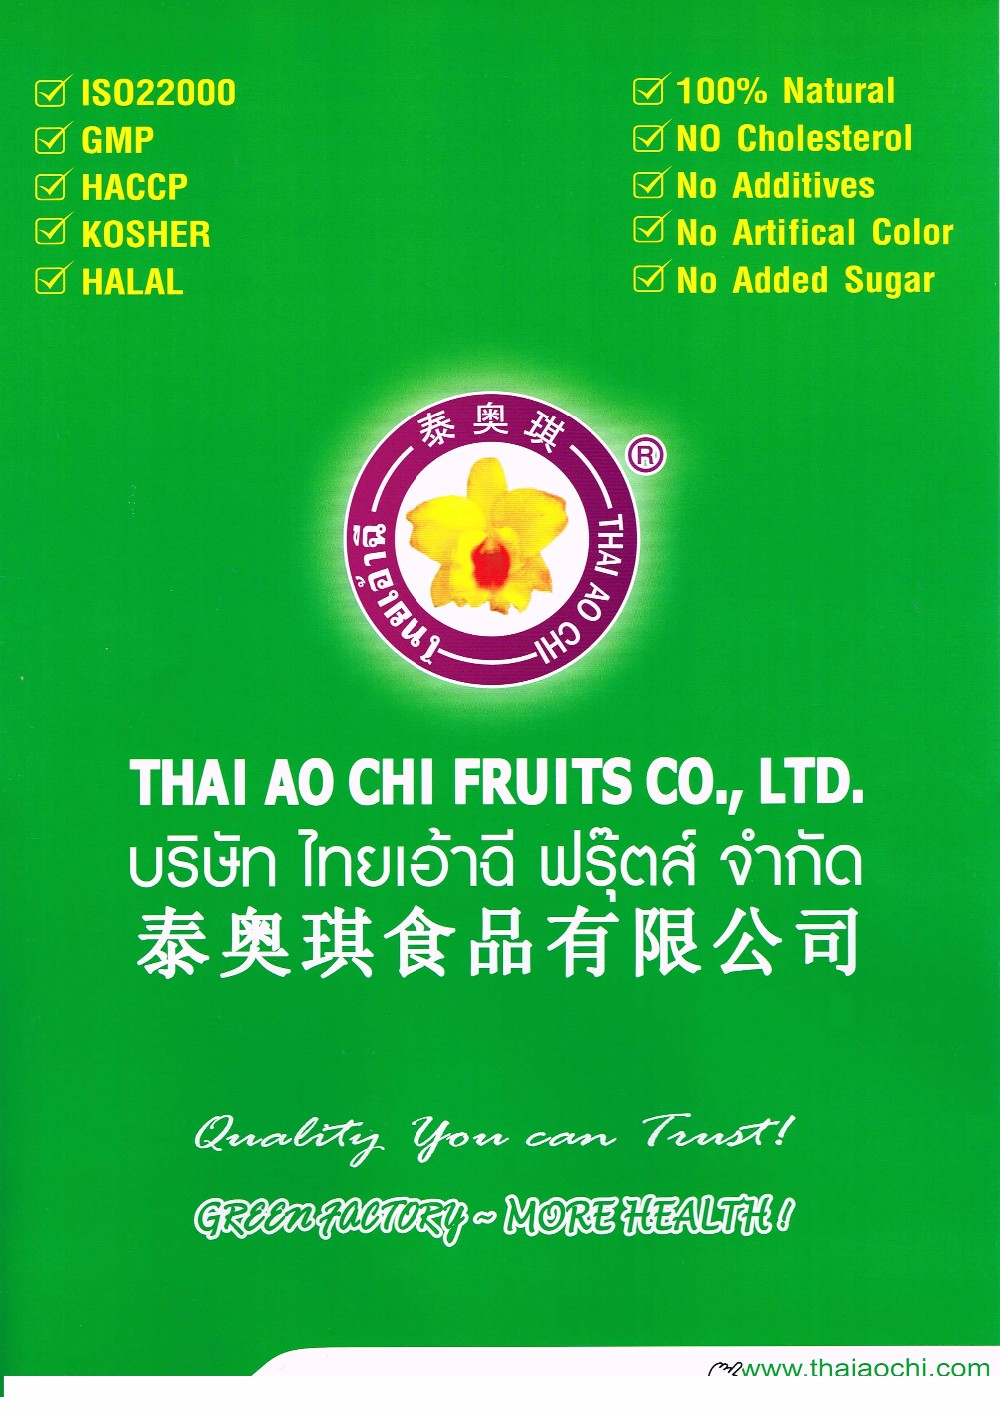 Frozen Pineapple slices & pieces from Thailand [ High quality product from Thai Ao Chi ]